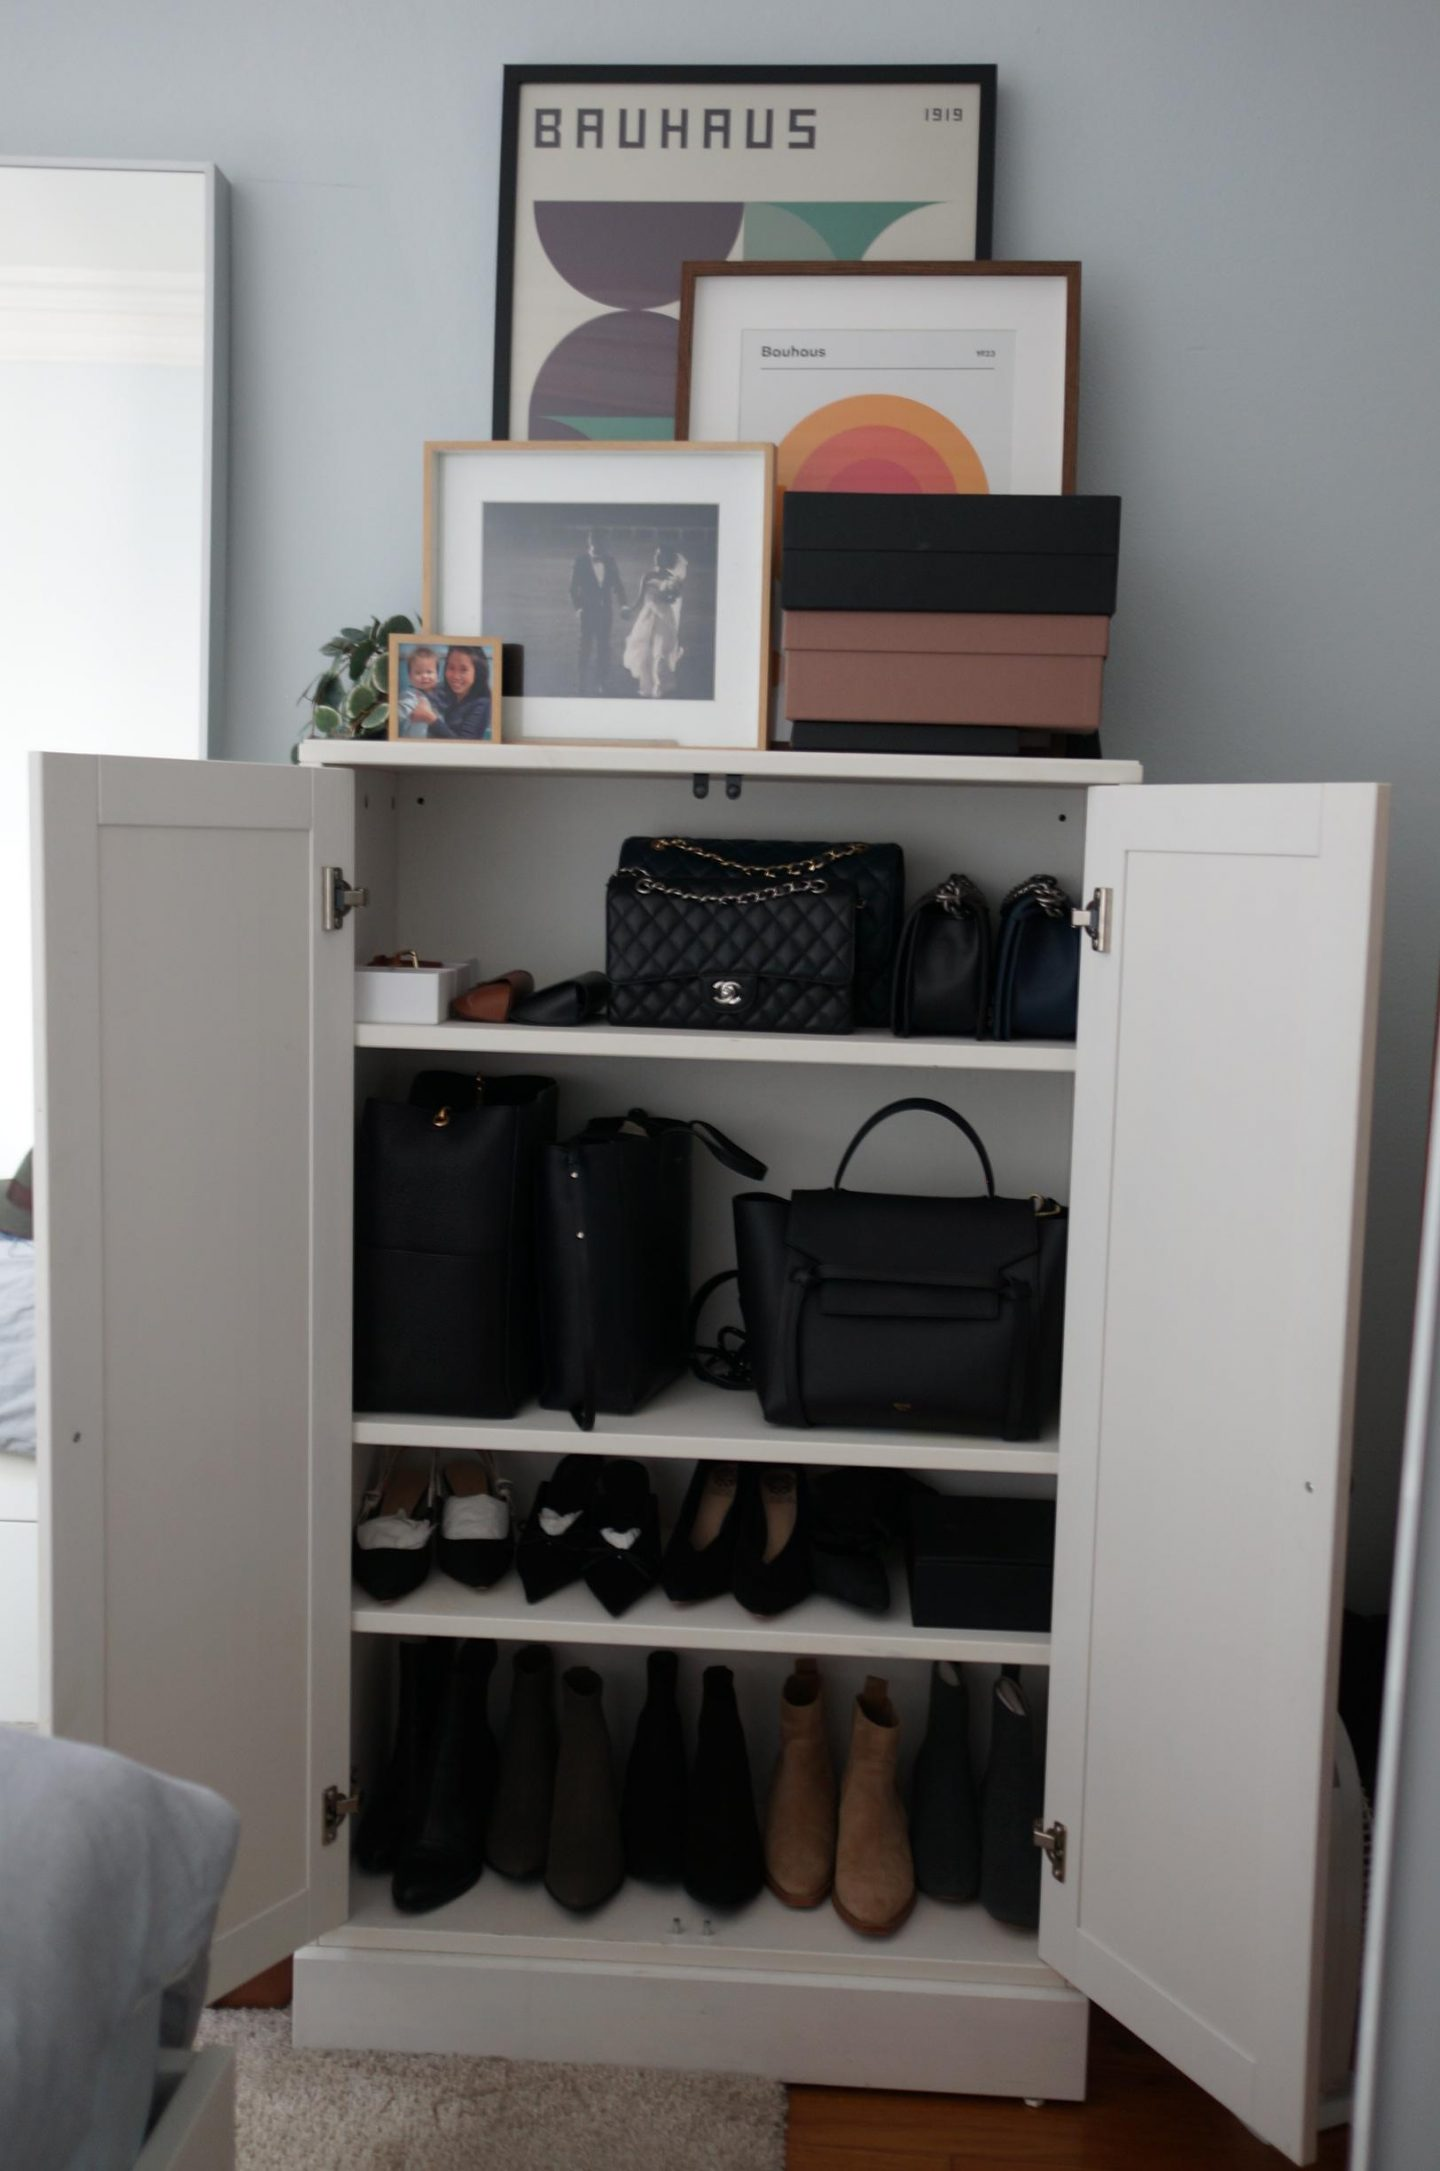 open cupboard showing designer handbag collection in blog post about caring for your handbags so they last